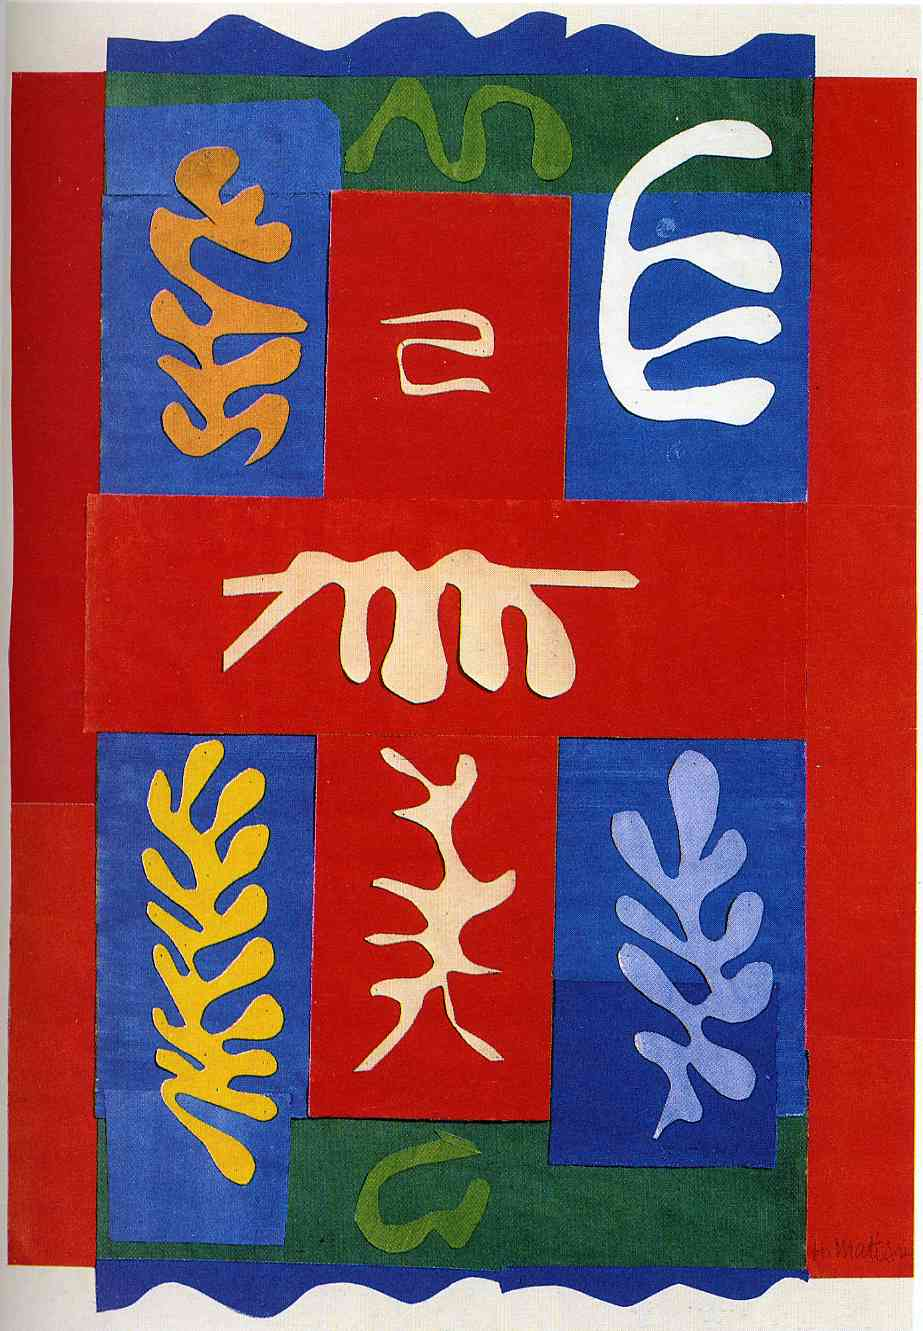 Henri Matisse - Composition with Red Cross 1947